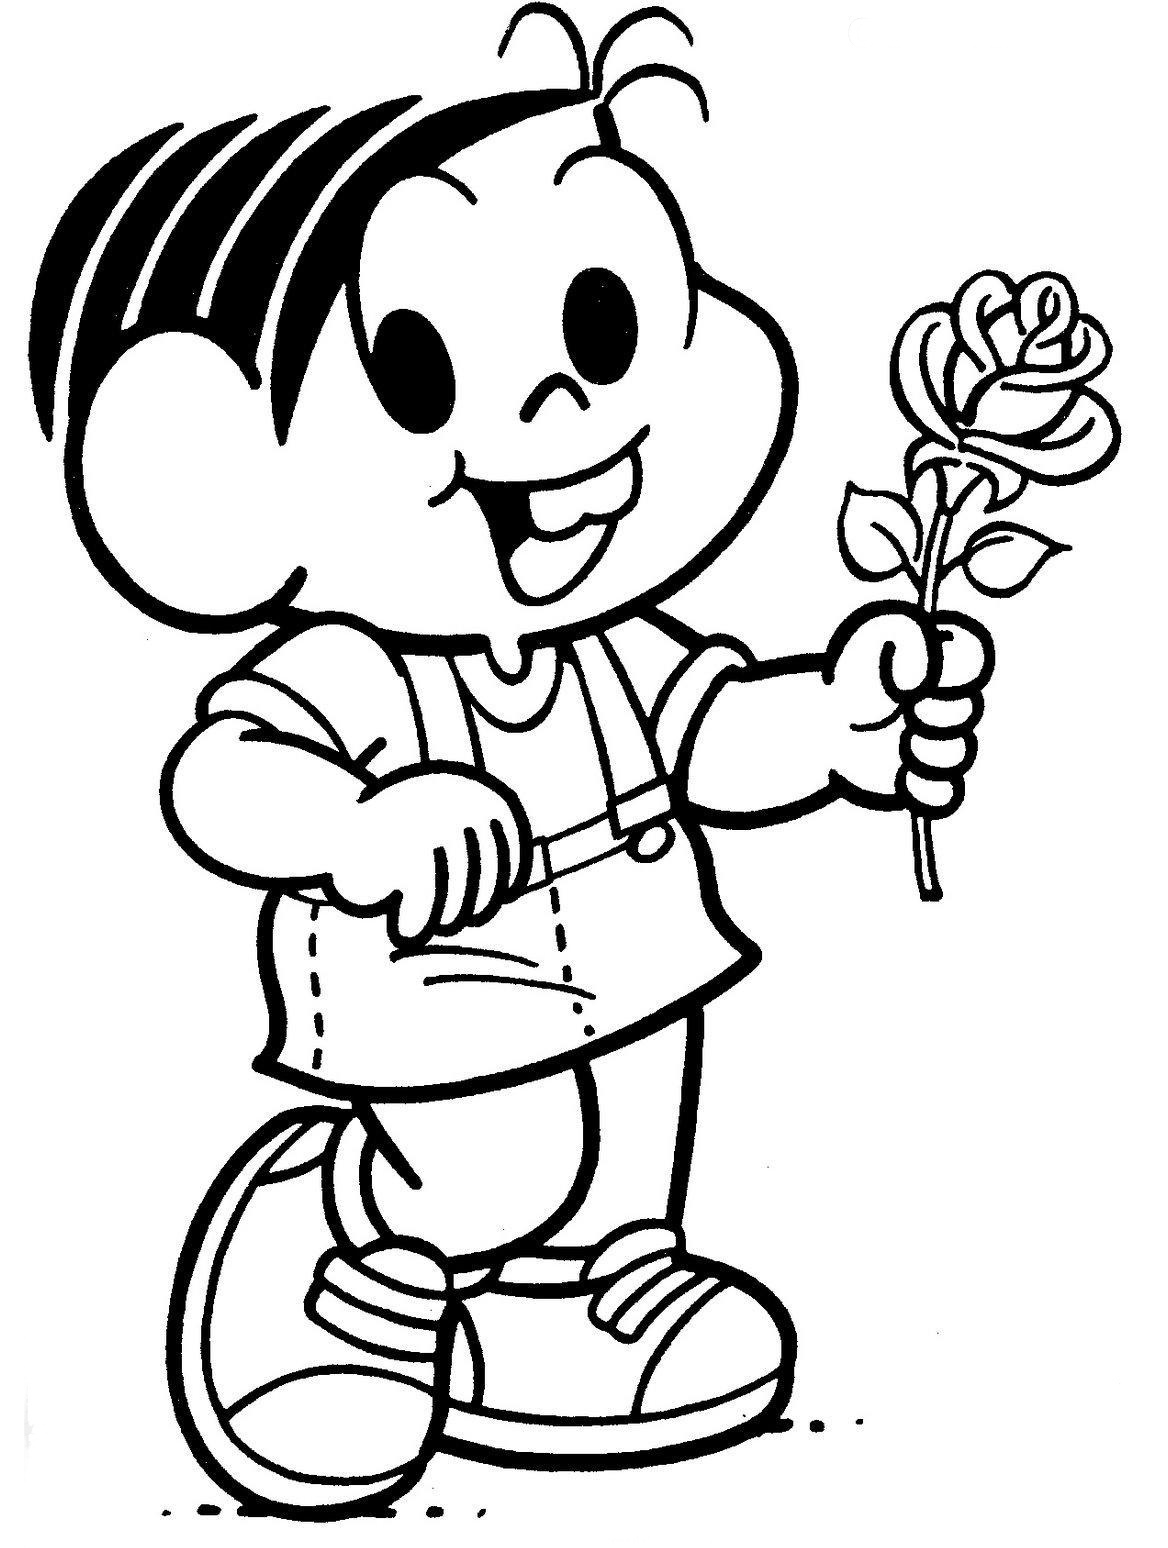 boy coloring games a boy holding rose coloring play free coloring game online coloring boy games